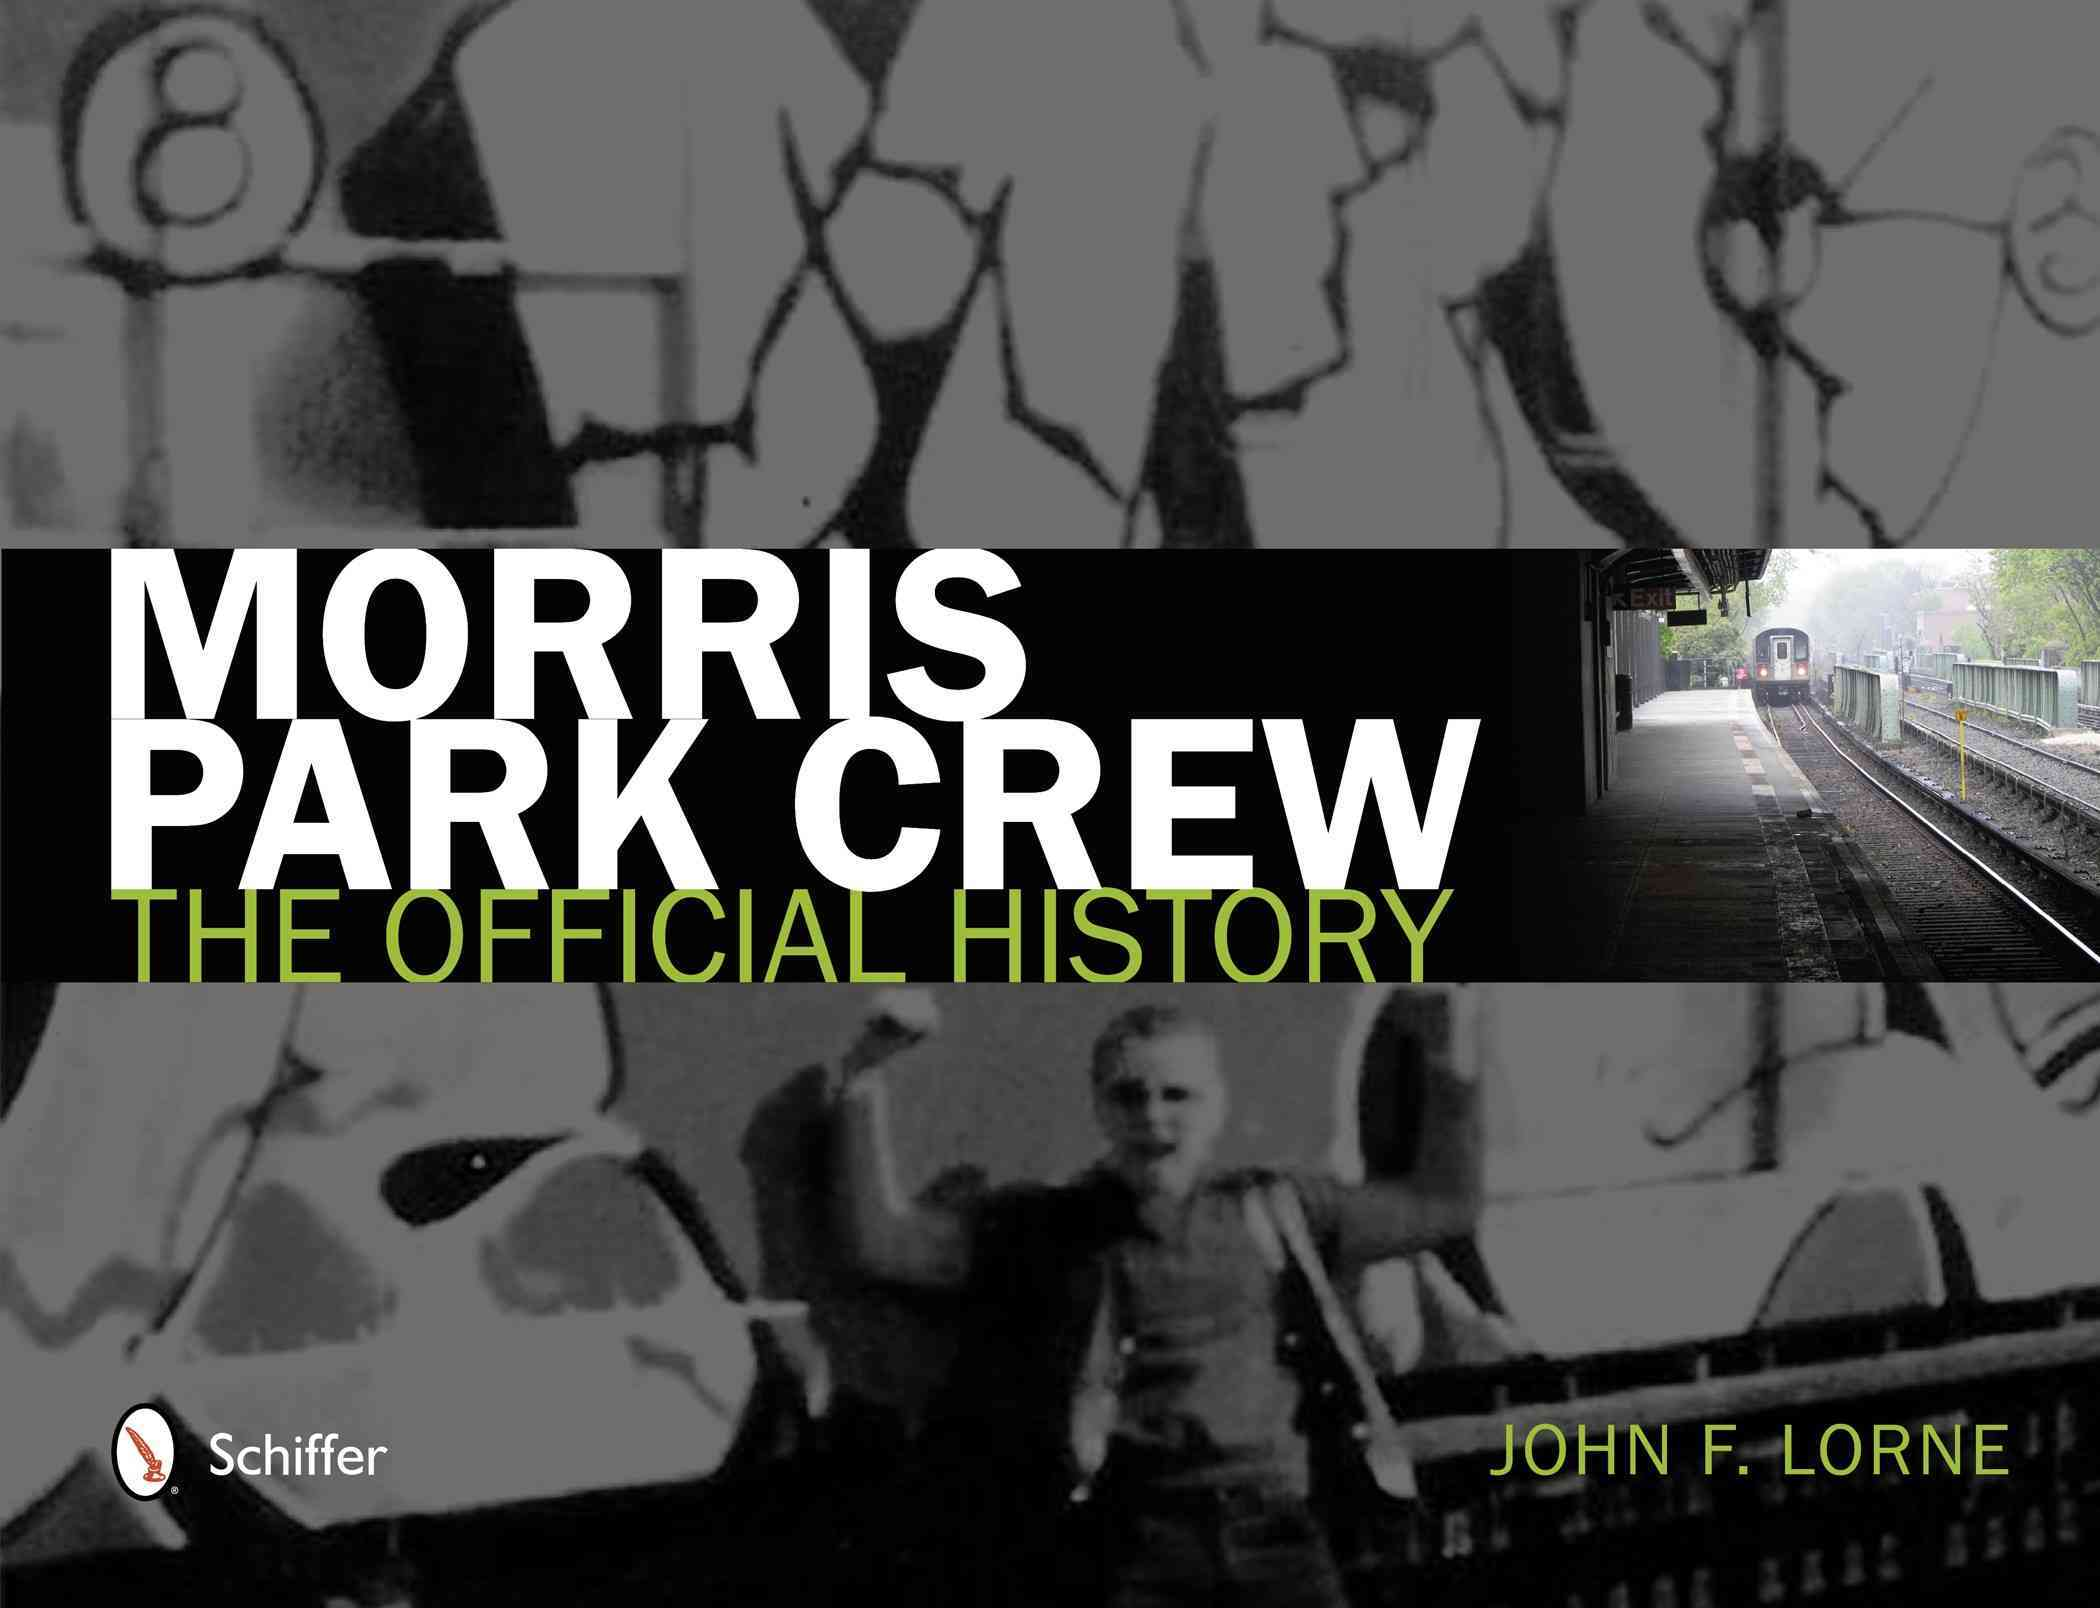 Morris Park Crew: The Official History (Hardcover)